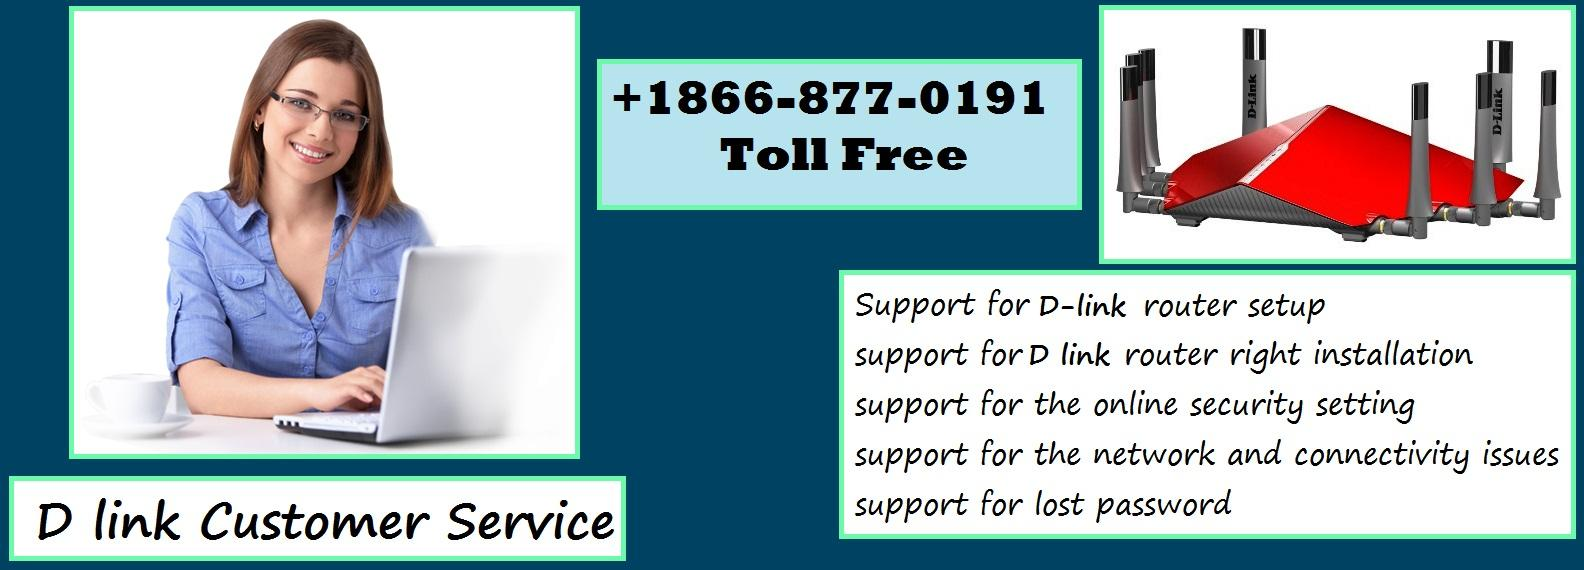 D-link Customer Service by Router help support